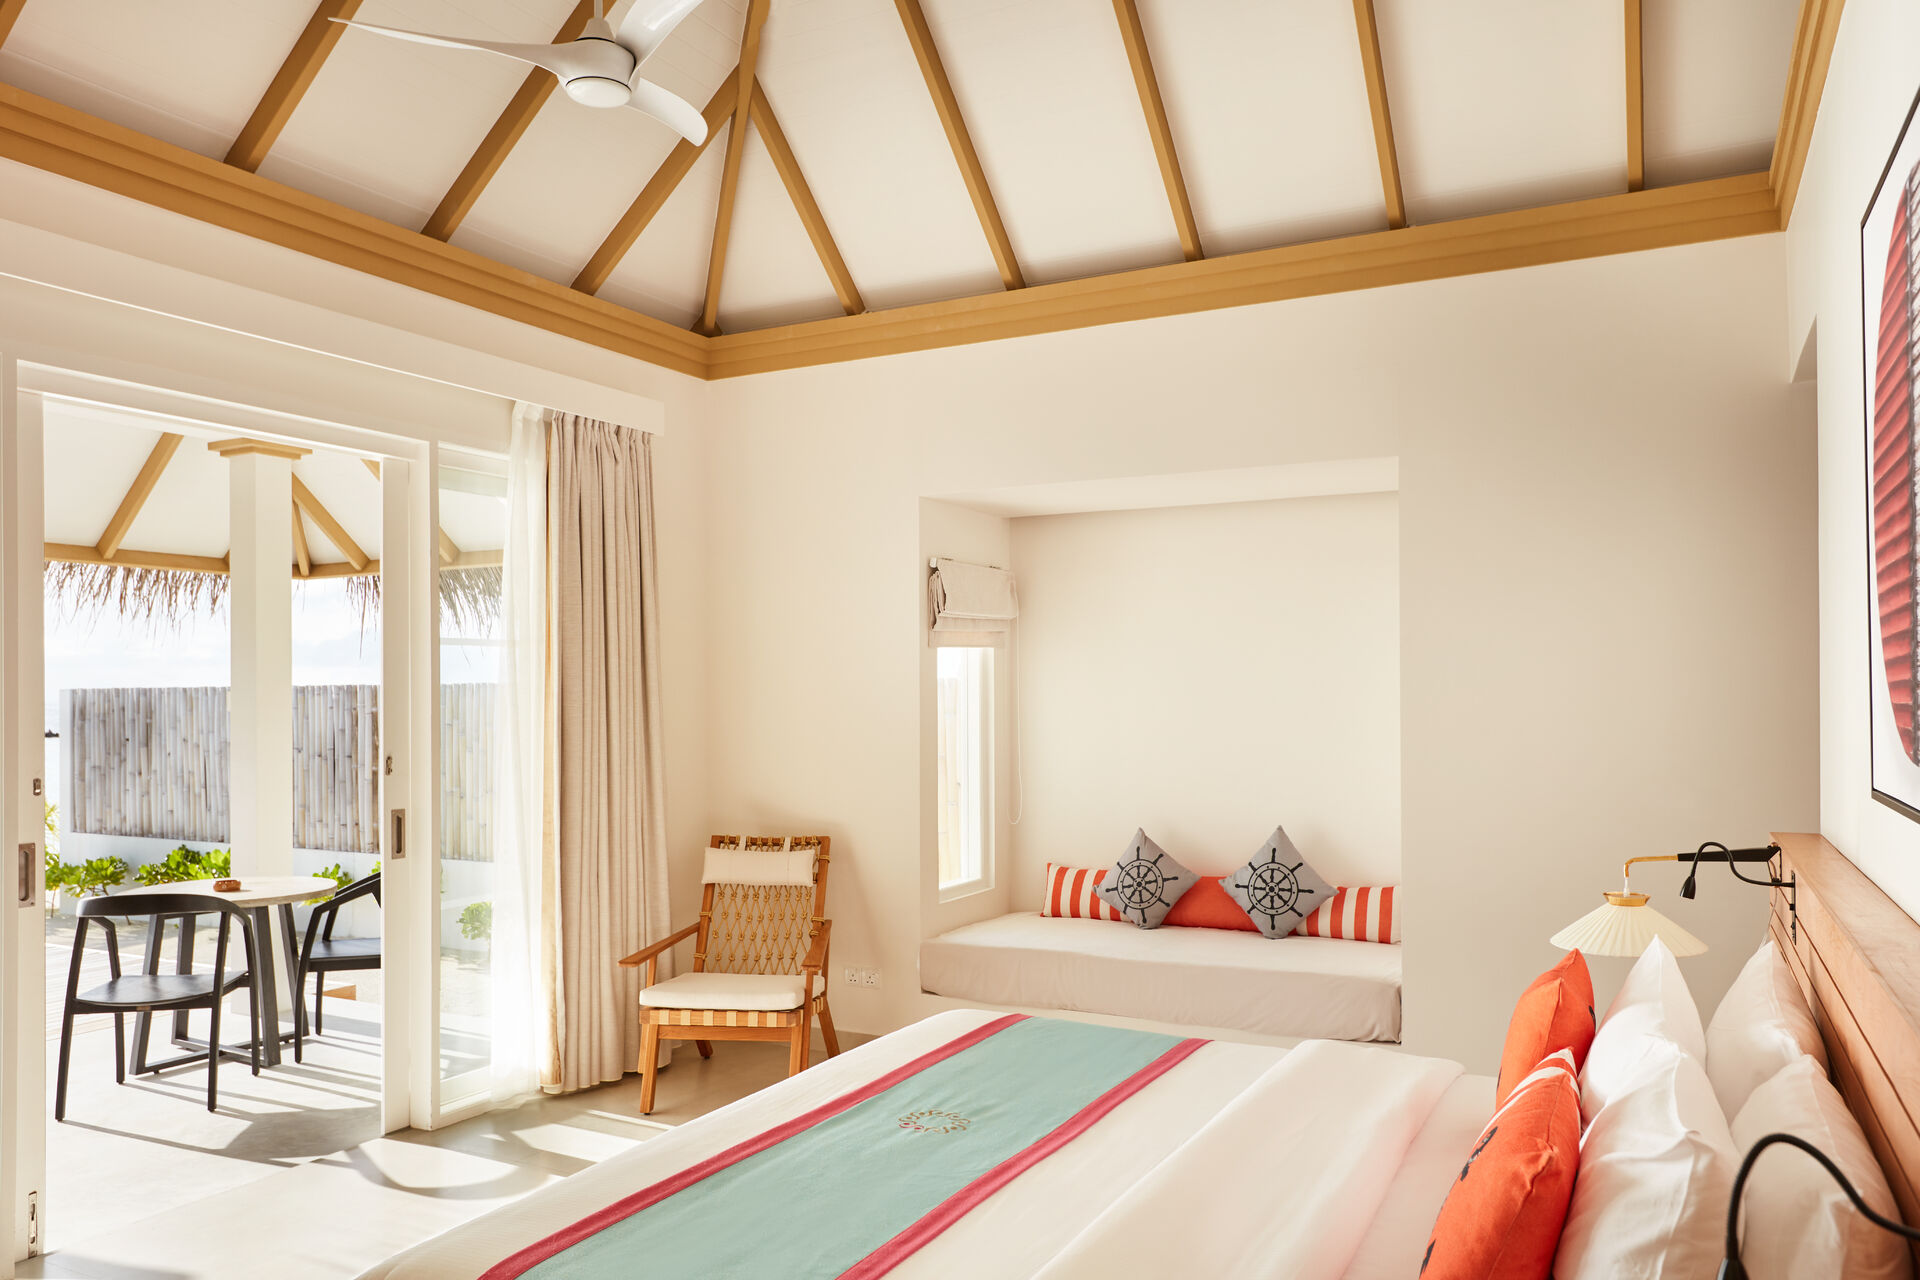 https://cms.satur.sk/data/imgs/tour_image/orig/iruveli_beach_suite_with_pool_0106-1939699.jpg